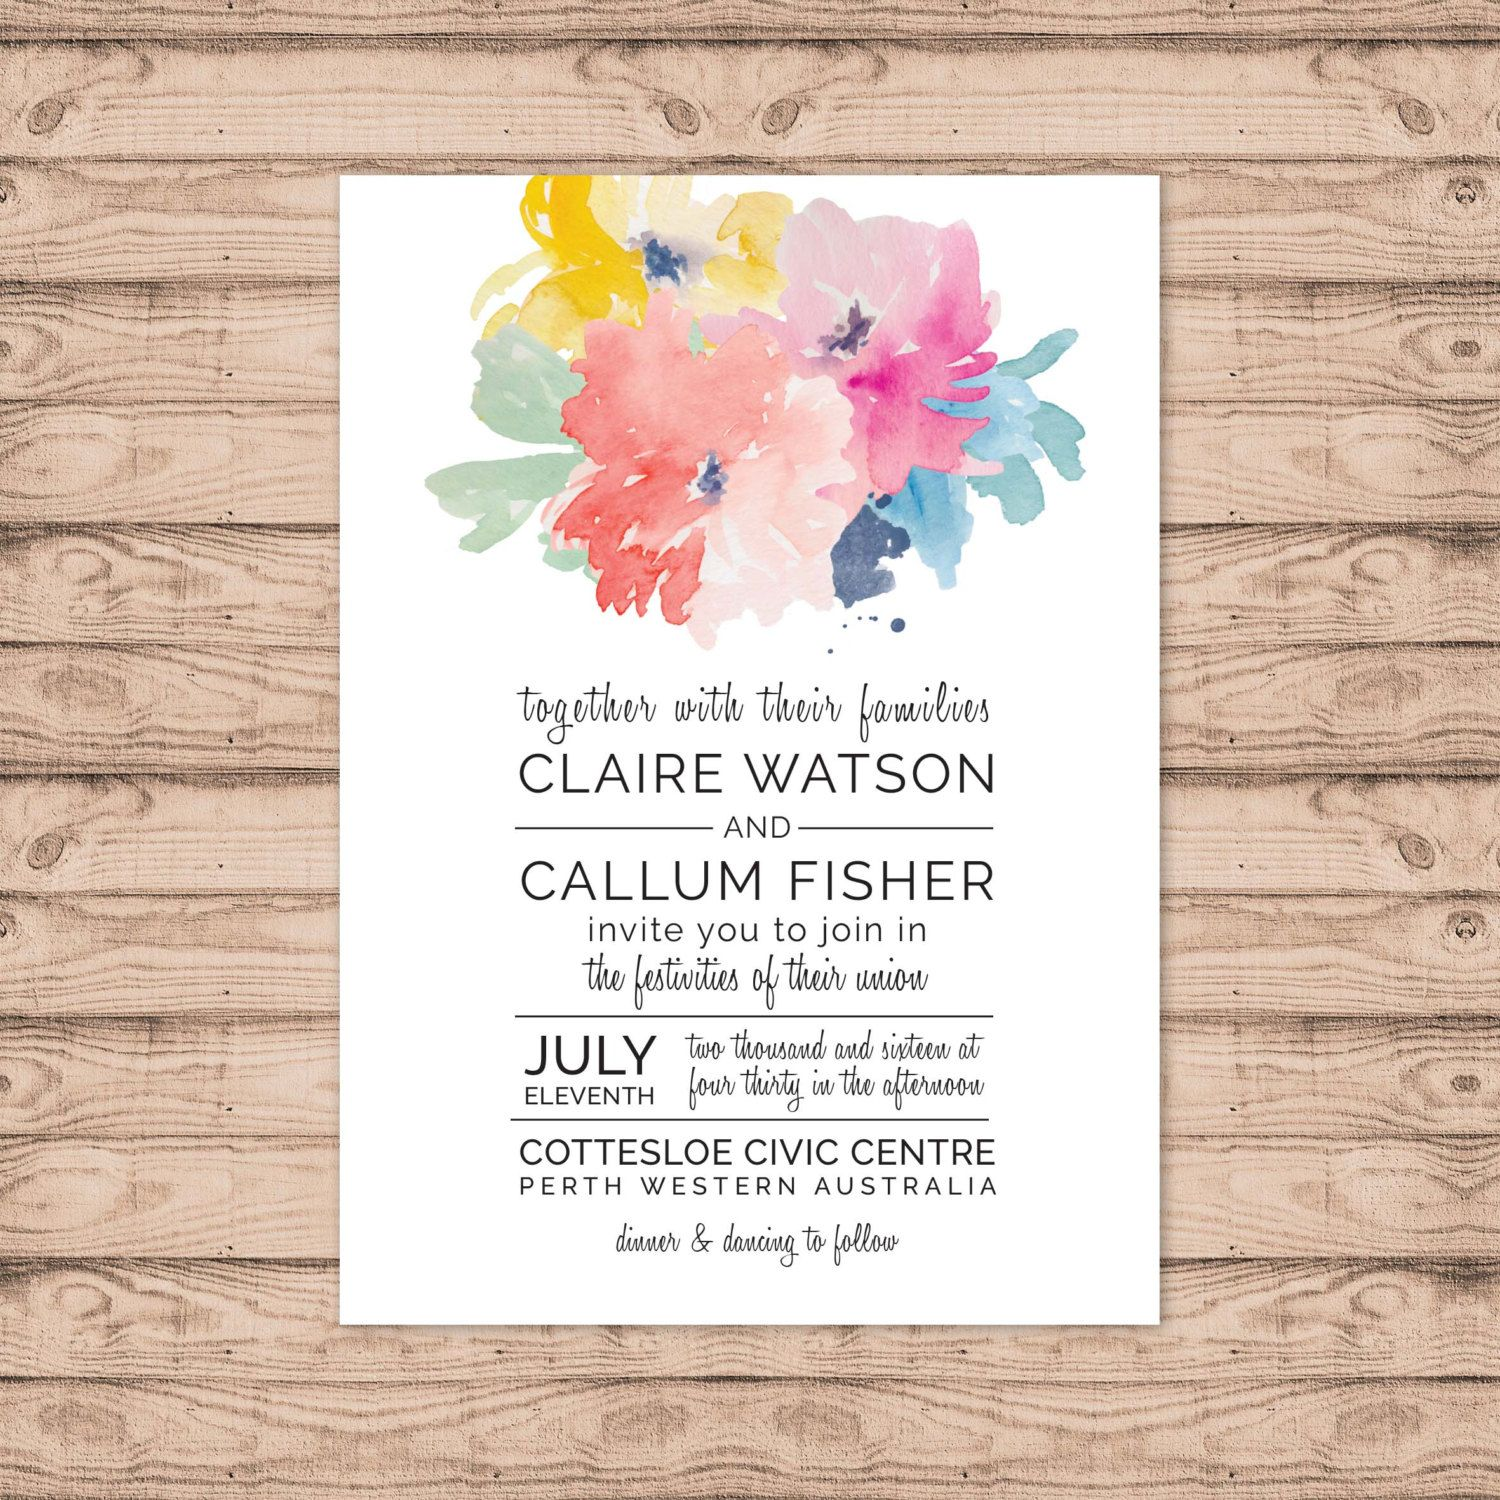 Floral Wedding Invitation   Print At Home File Or Printed Invitations    Modern Floral Watercolour Wedding